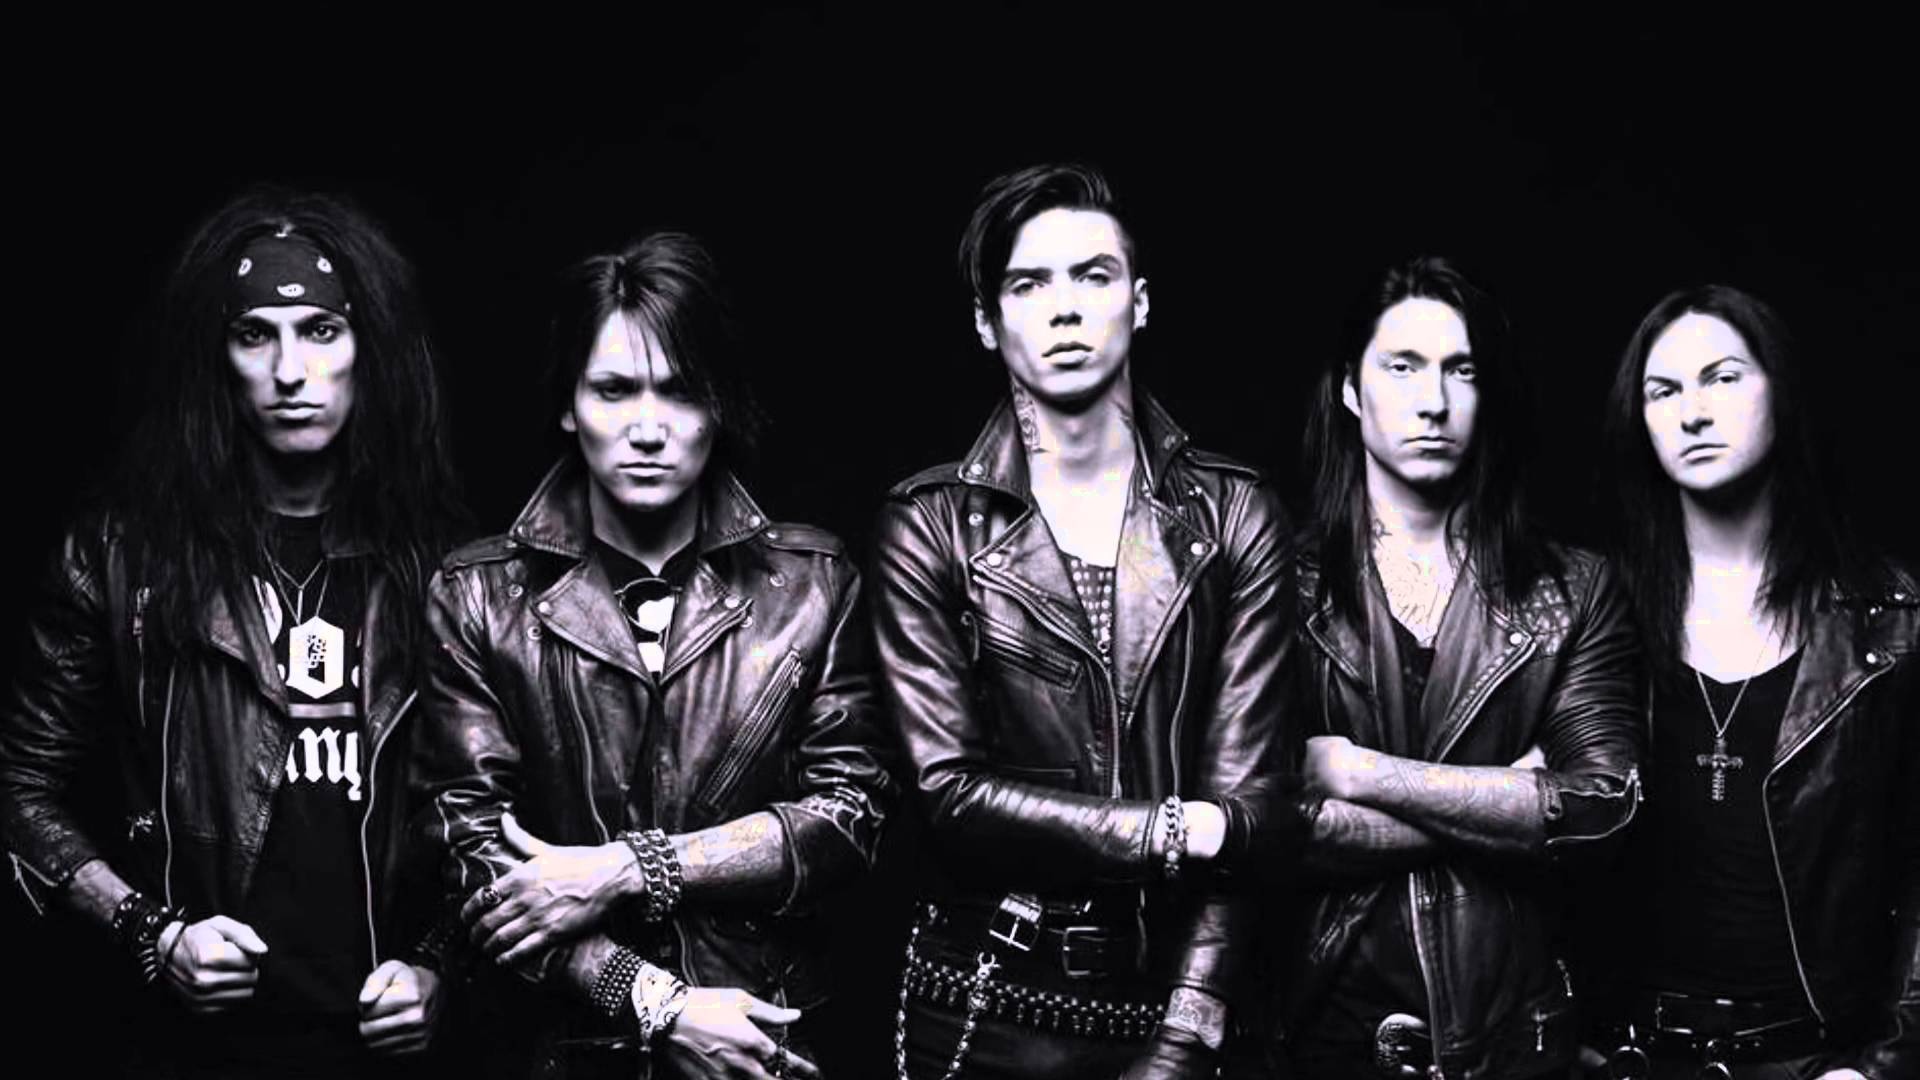 Black Veil Brides Wallpaper HD 1920x1080